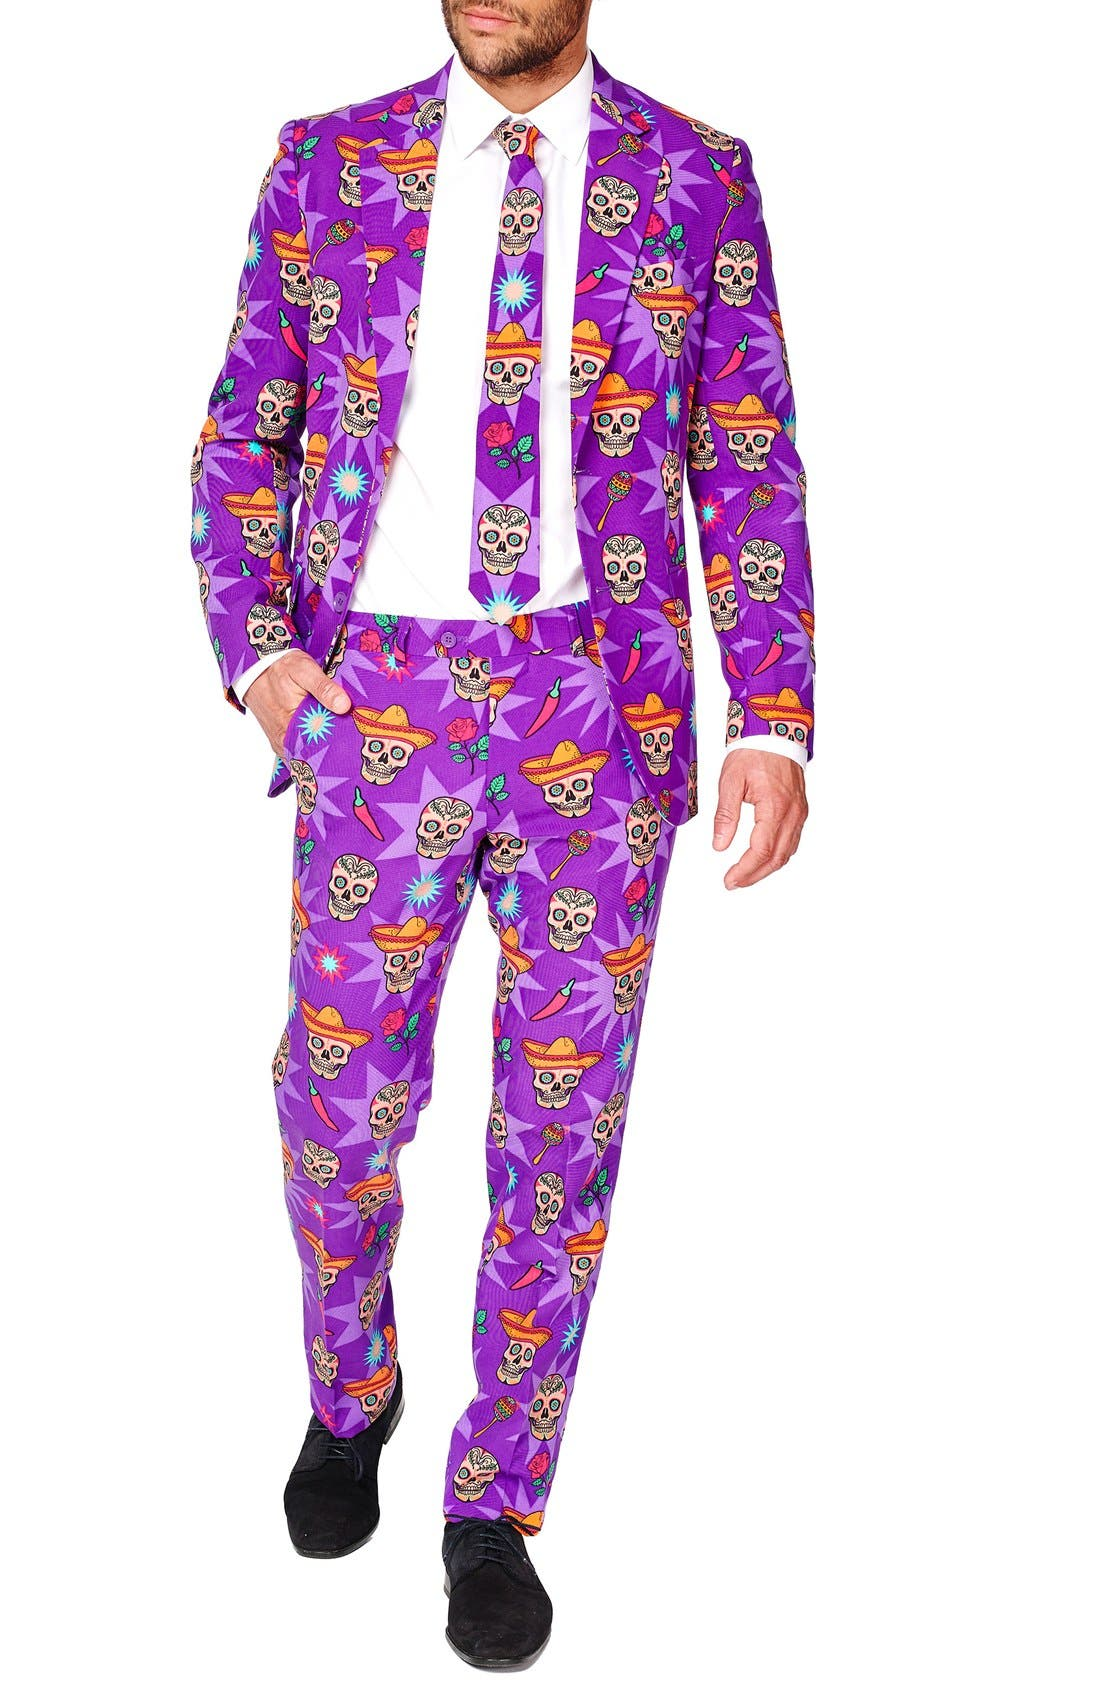 'El Muerto' Trim Fit Two-Piece Suit with Tie,                             Main thumbnail 1, color,                             Purple